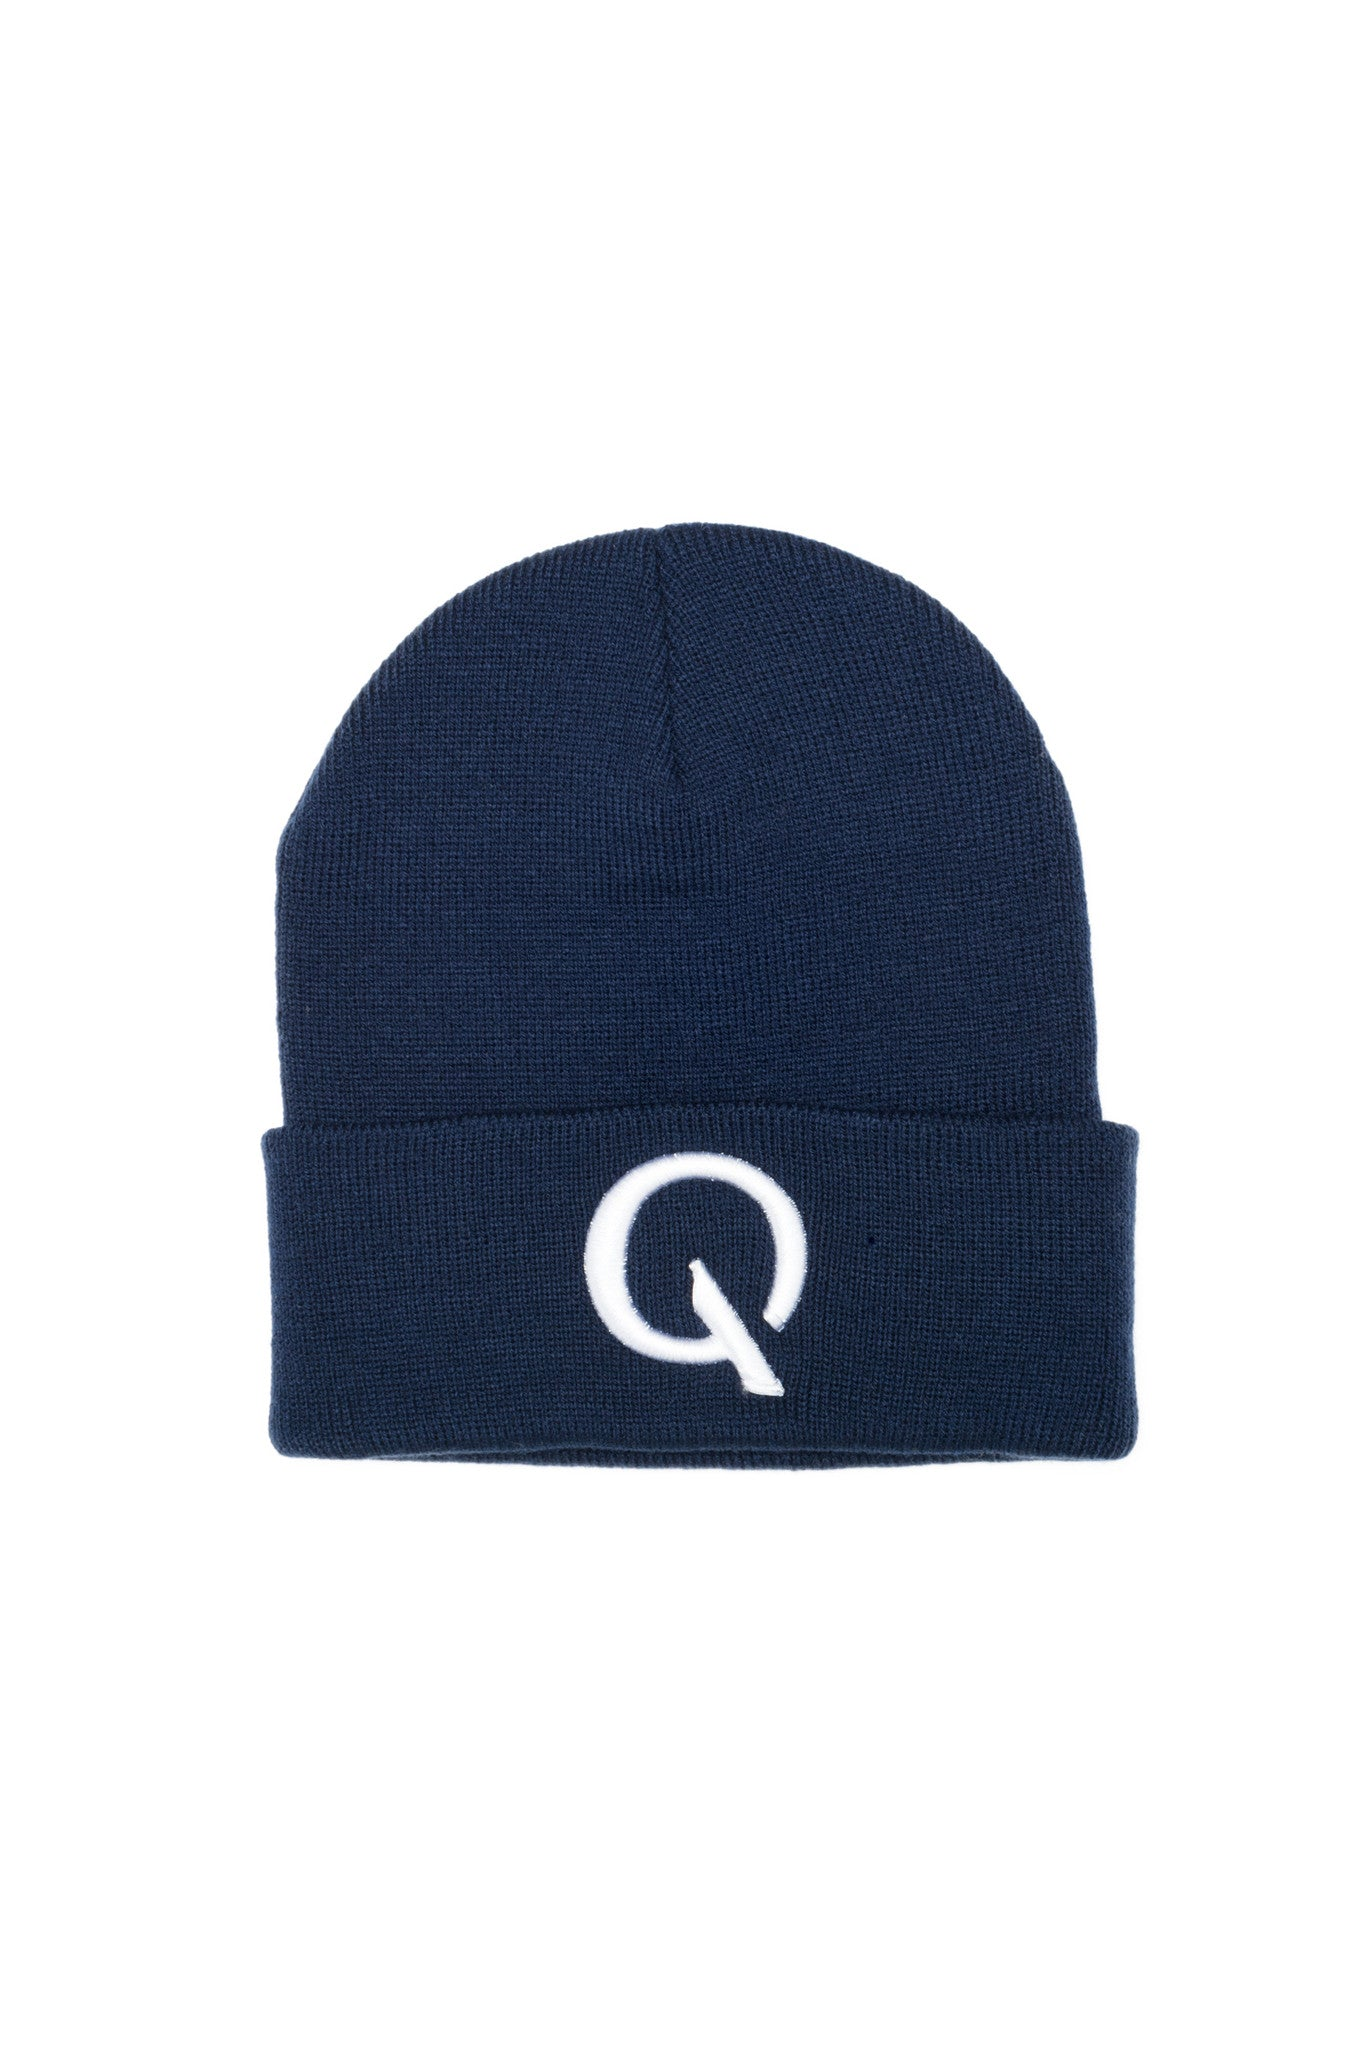 Broken Cycle KnitCap (Navy)